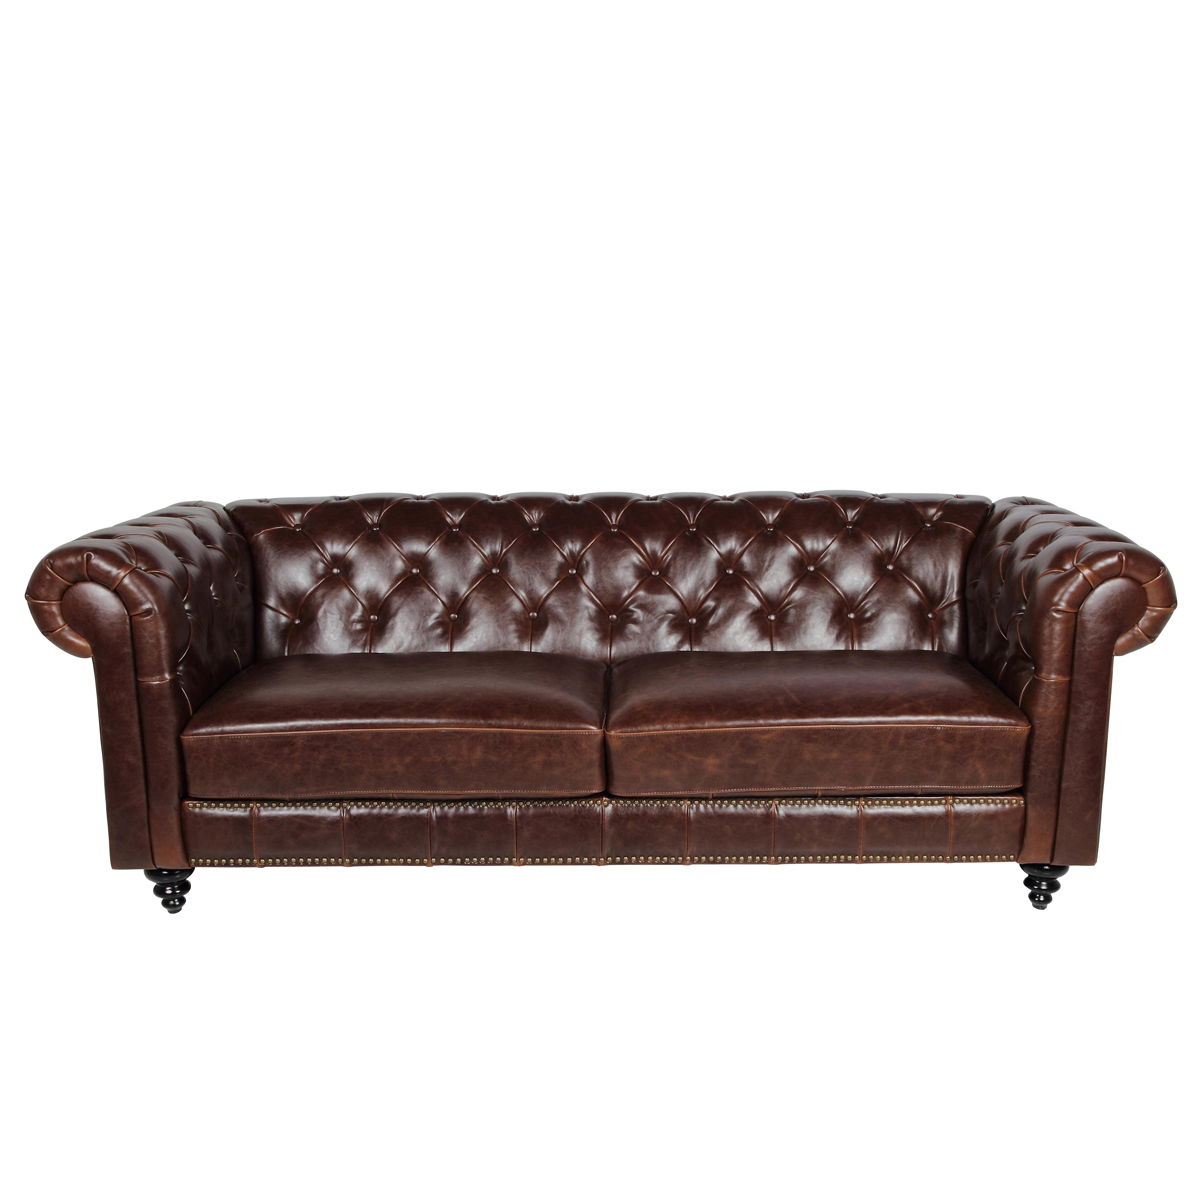 sofa 3 sitzer charlietown polstersofa antik bycast leder braun chesterfield stil ebay. Black Bedroom Furniture Sets. Home Design Ideas